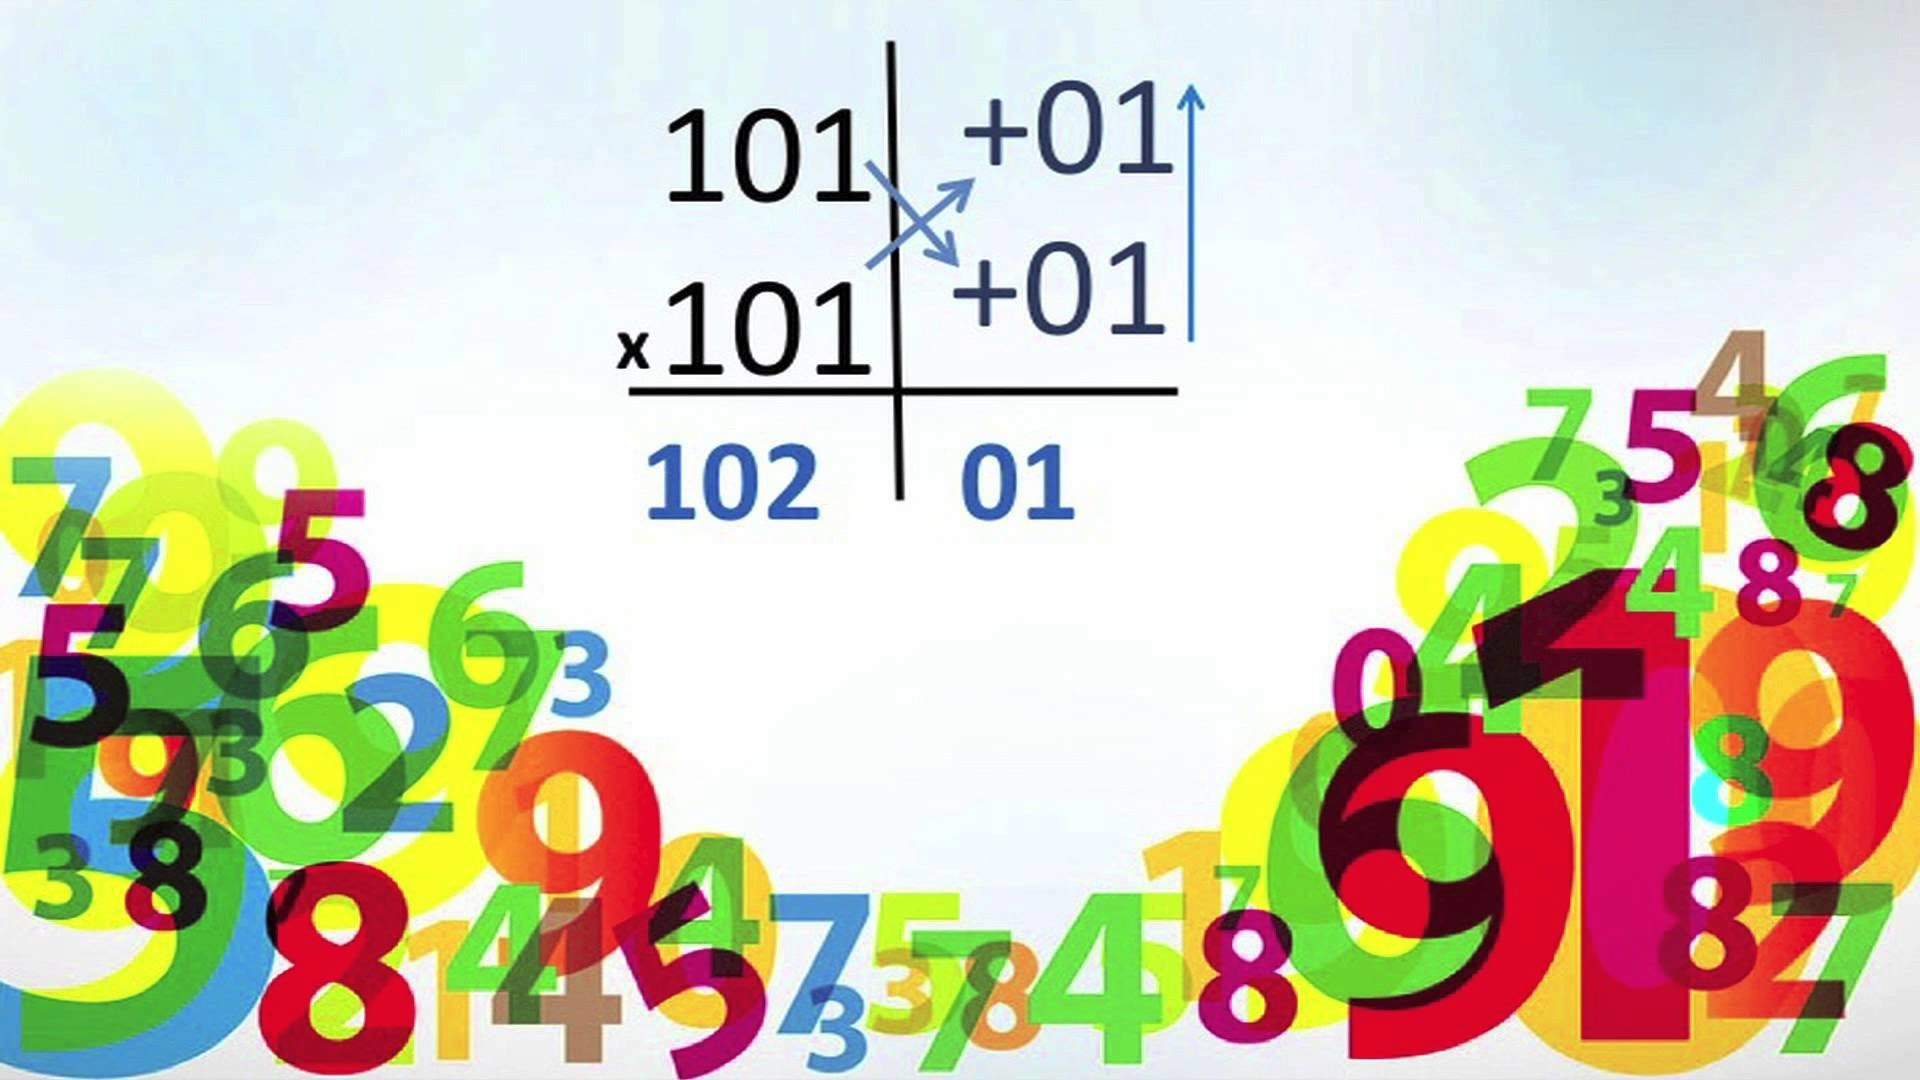 1920x1080 2560x1440 Desktop Images - Funny Math Wallpapers, Fredda Conwell